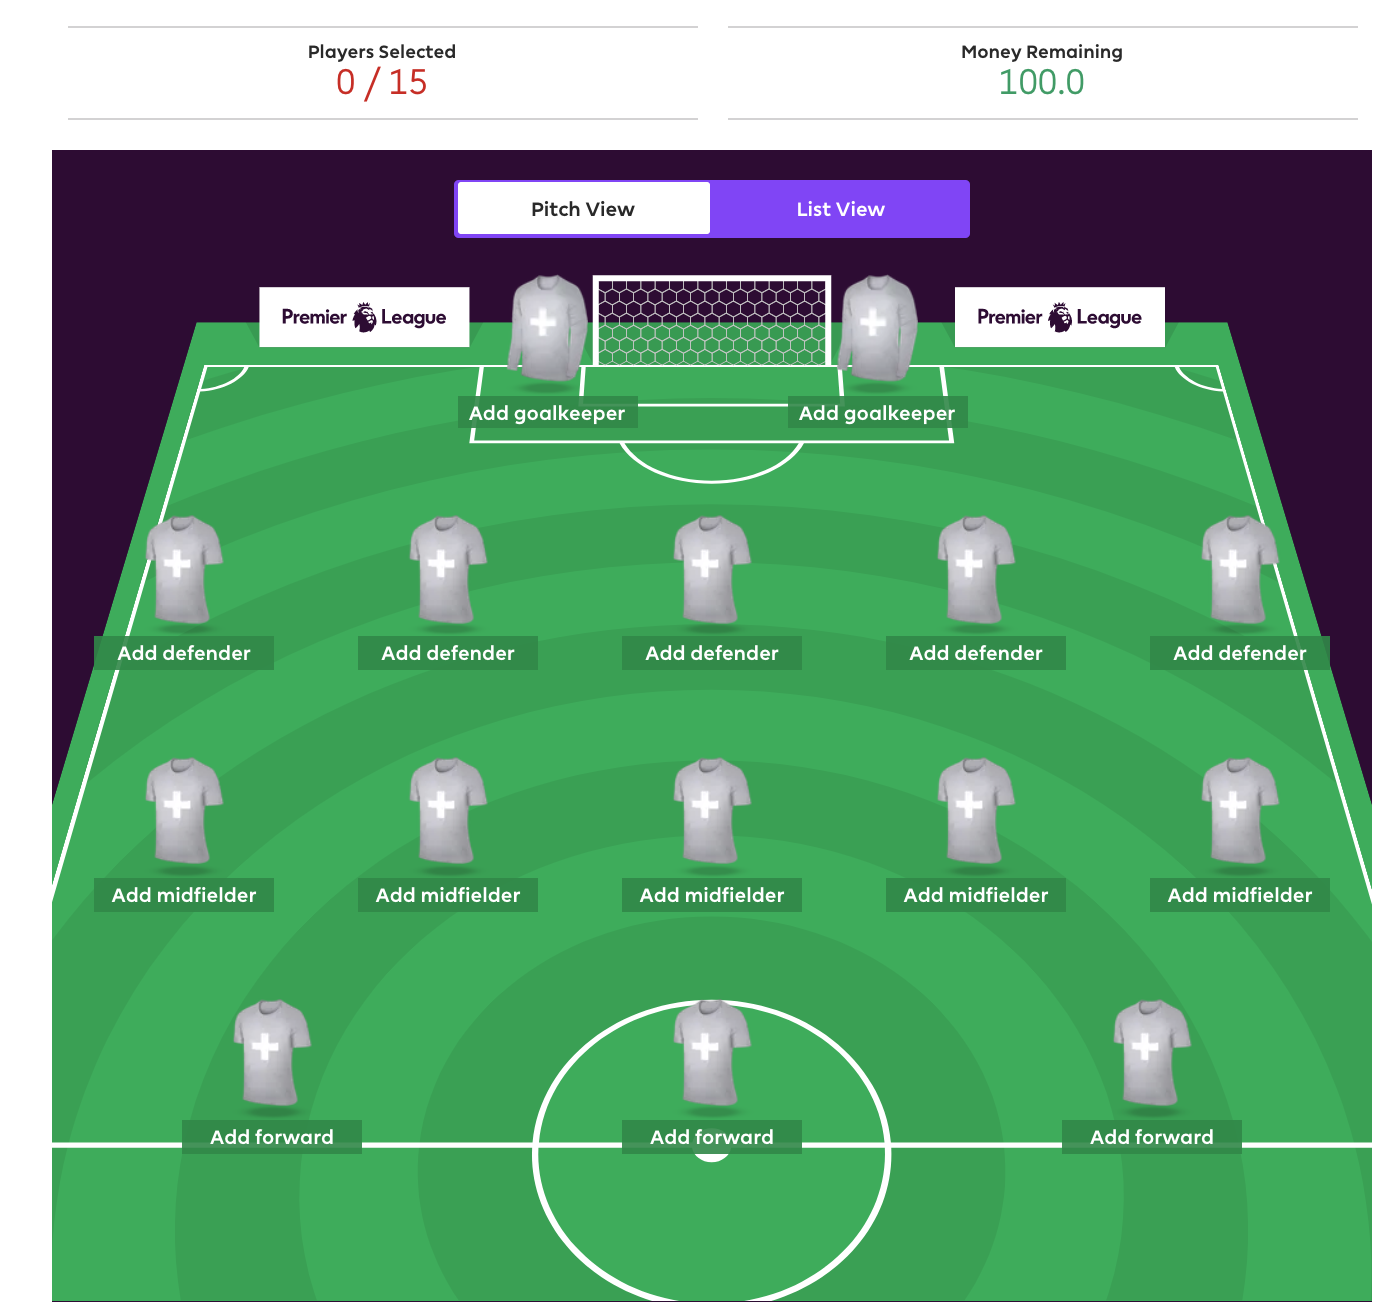 Fantasy Premier League Fpl Lessons On Building Products By Diwakar Kaushik Sep 2020 The Product Design Blog